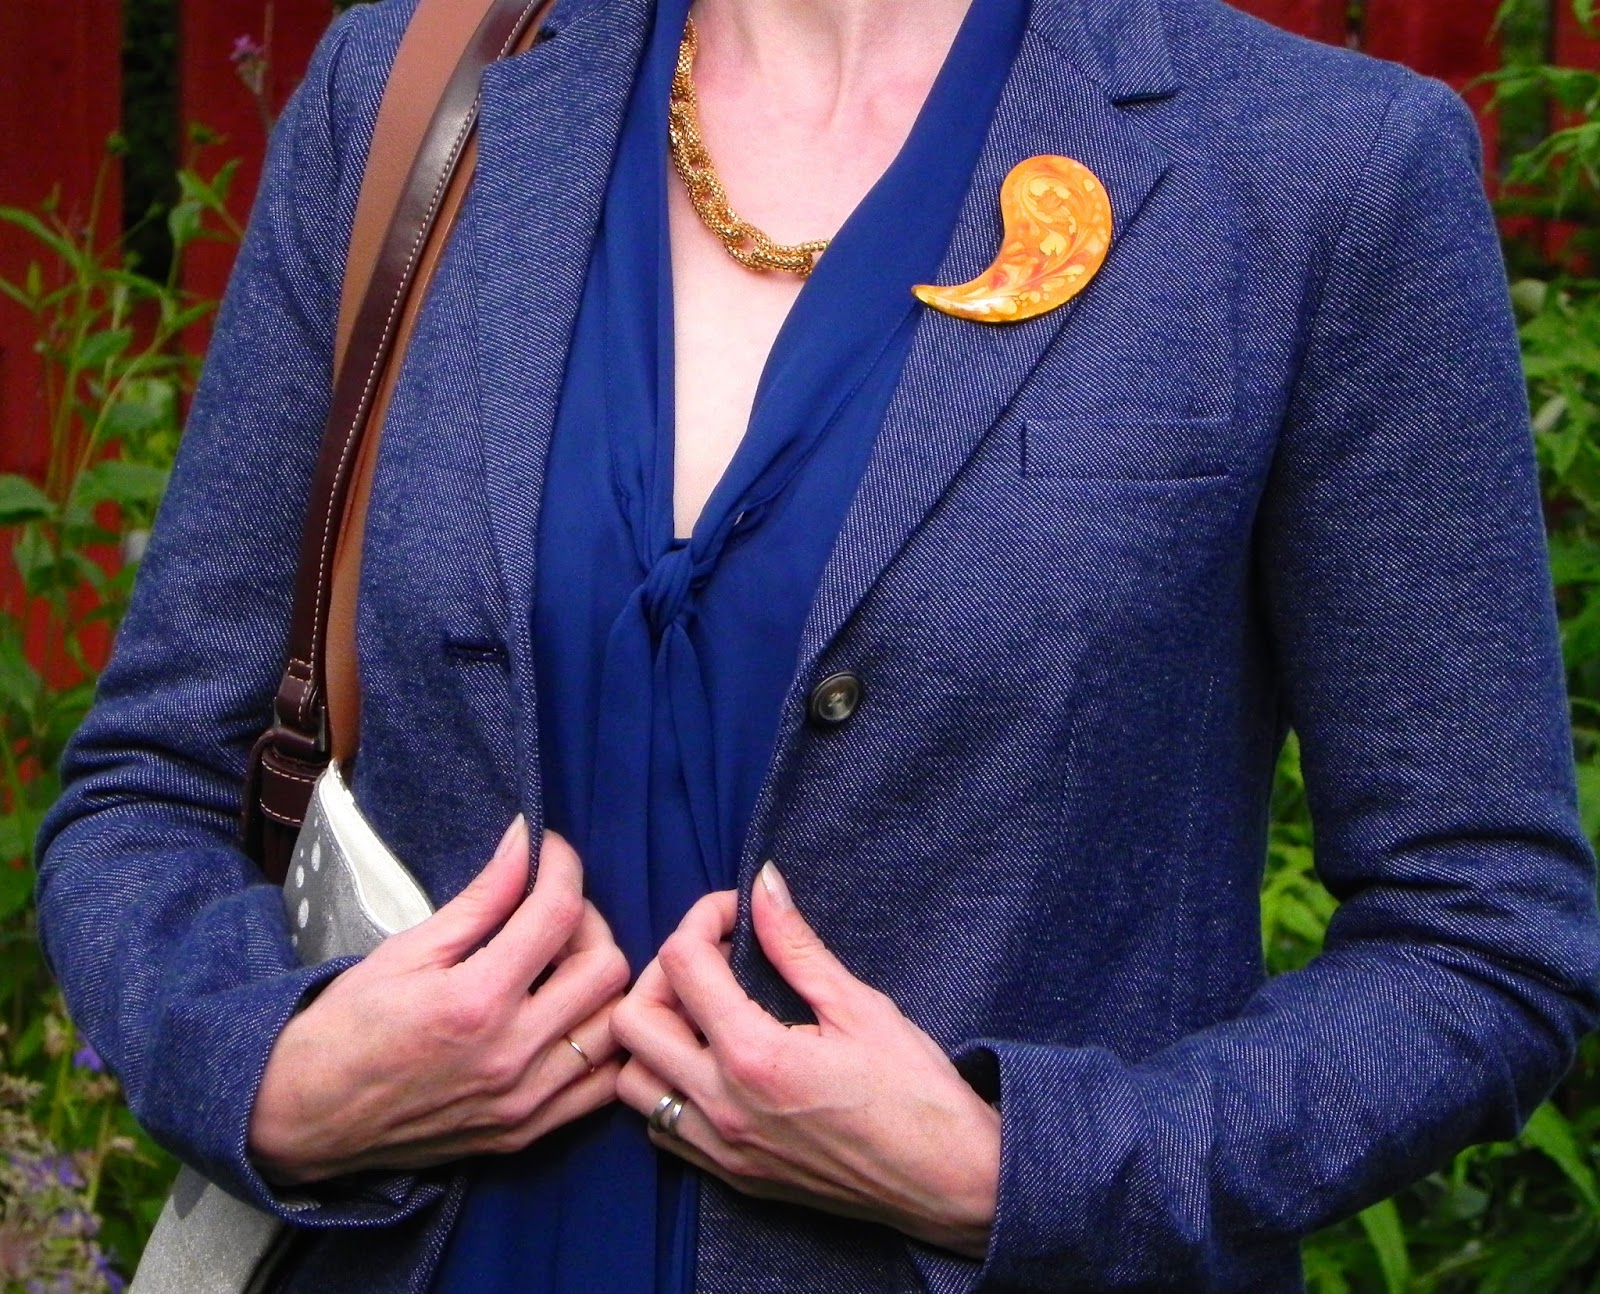 Blue jacket, vintage brooch.